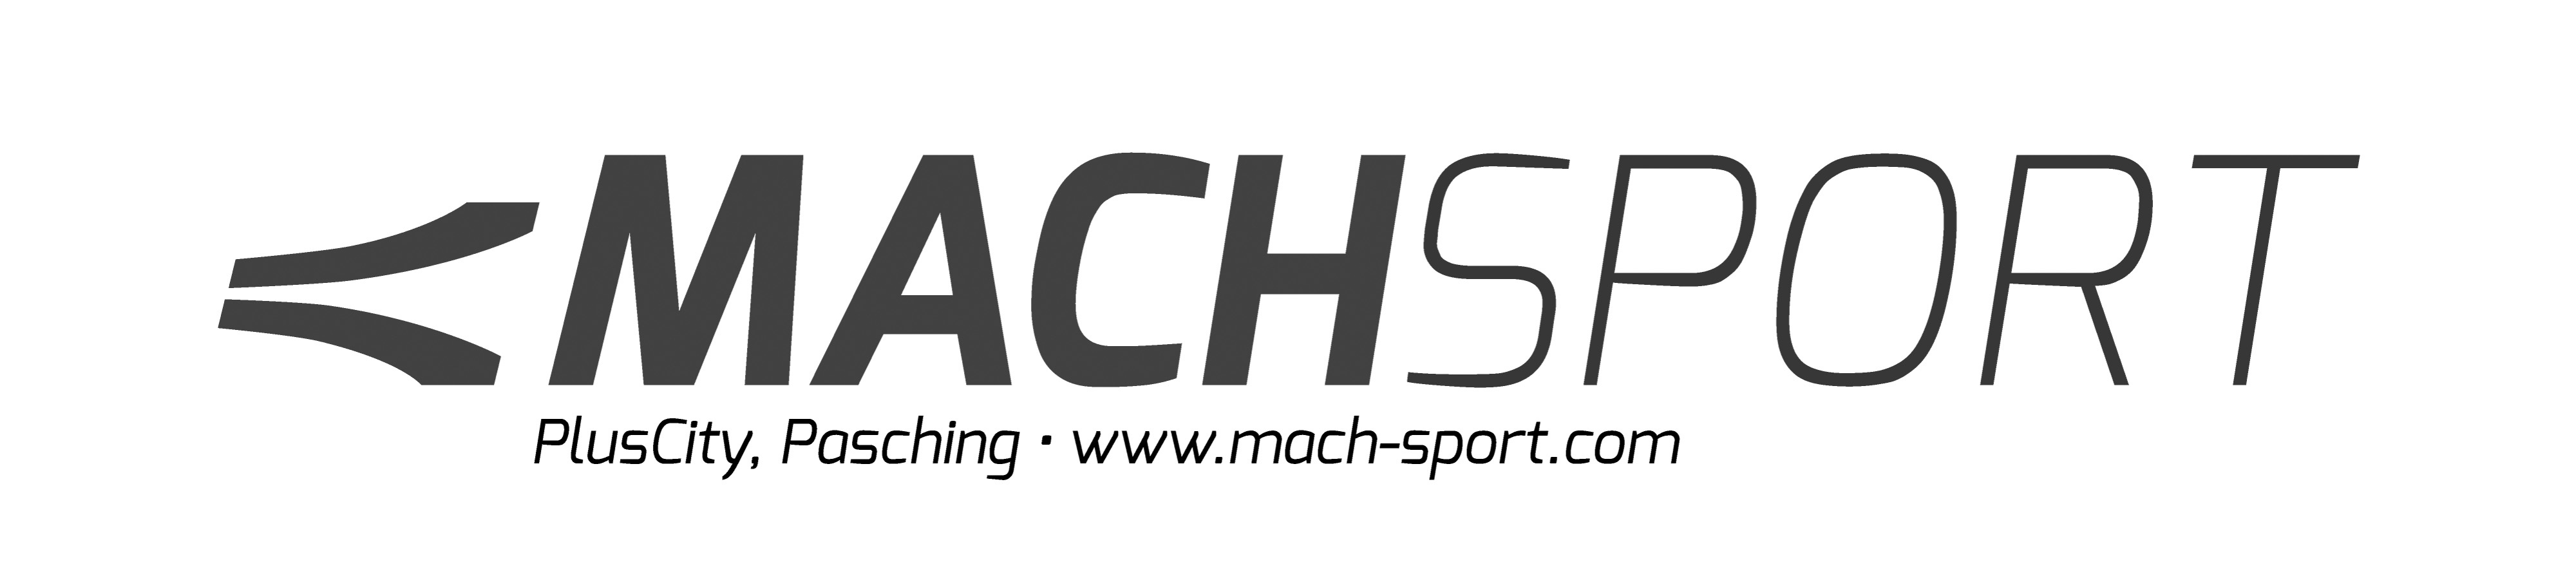 logo-machsport-red-black_1